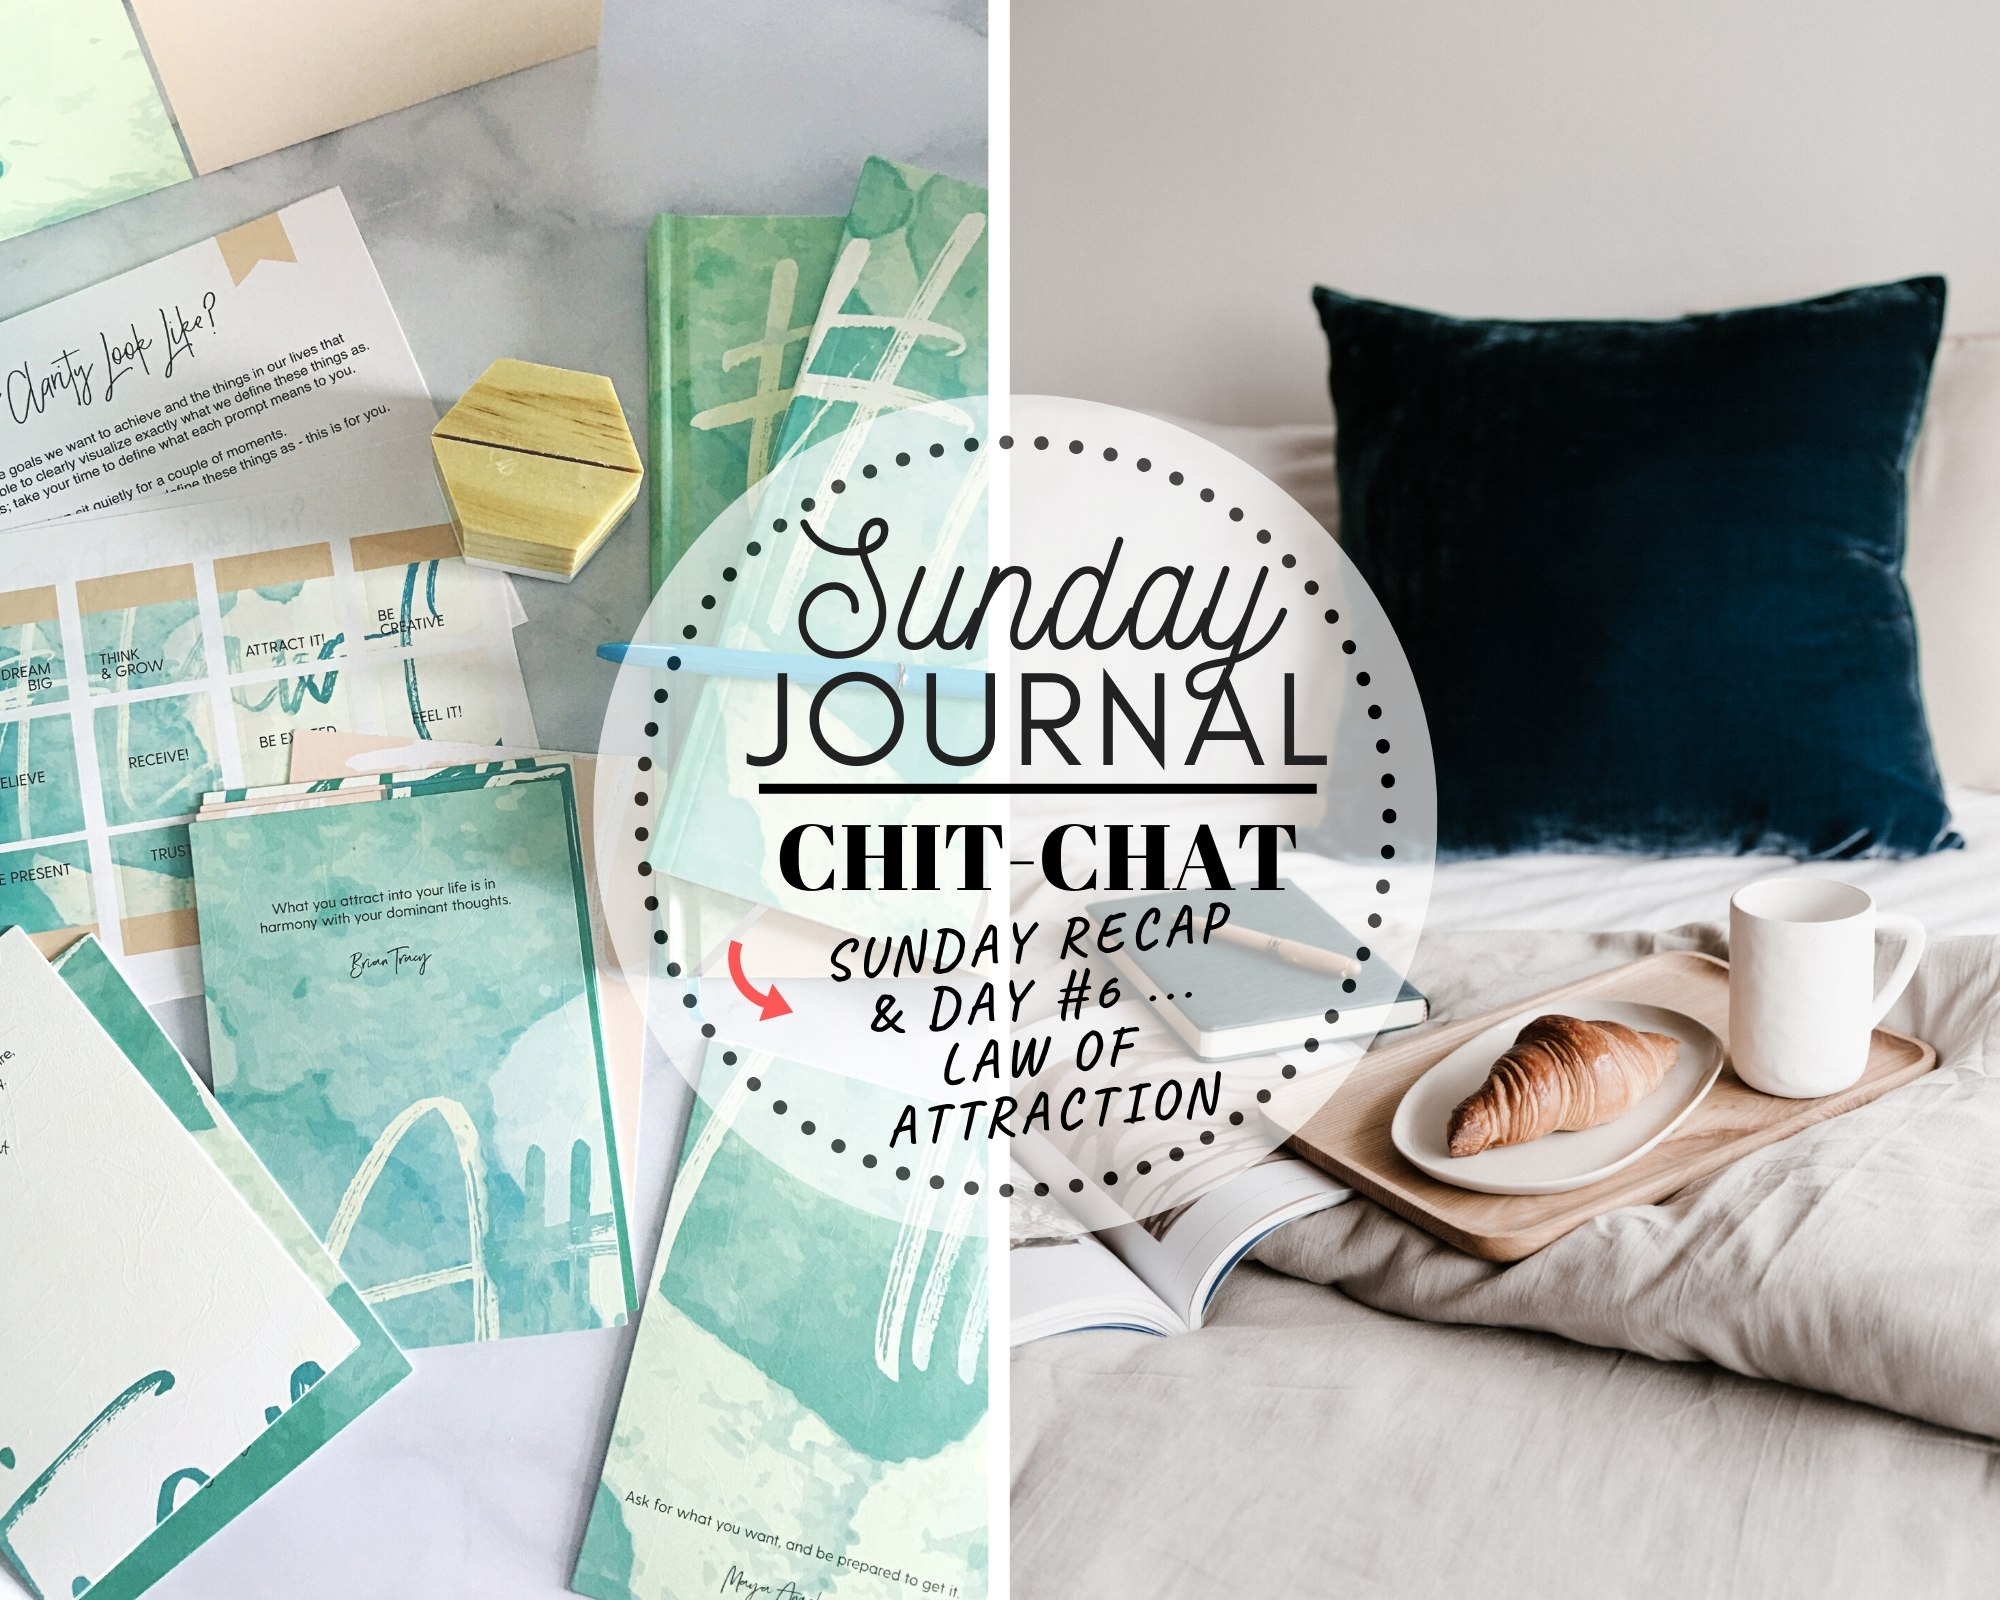 Sunday Recap … Let's Chat! … Law of Attraction, Day #7